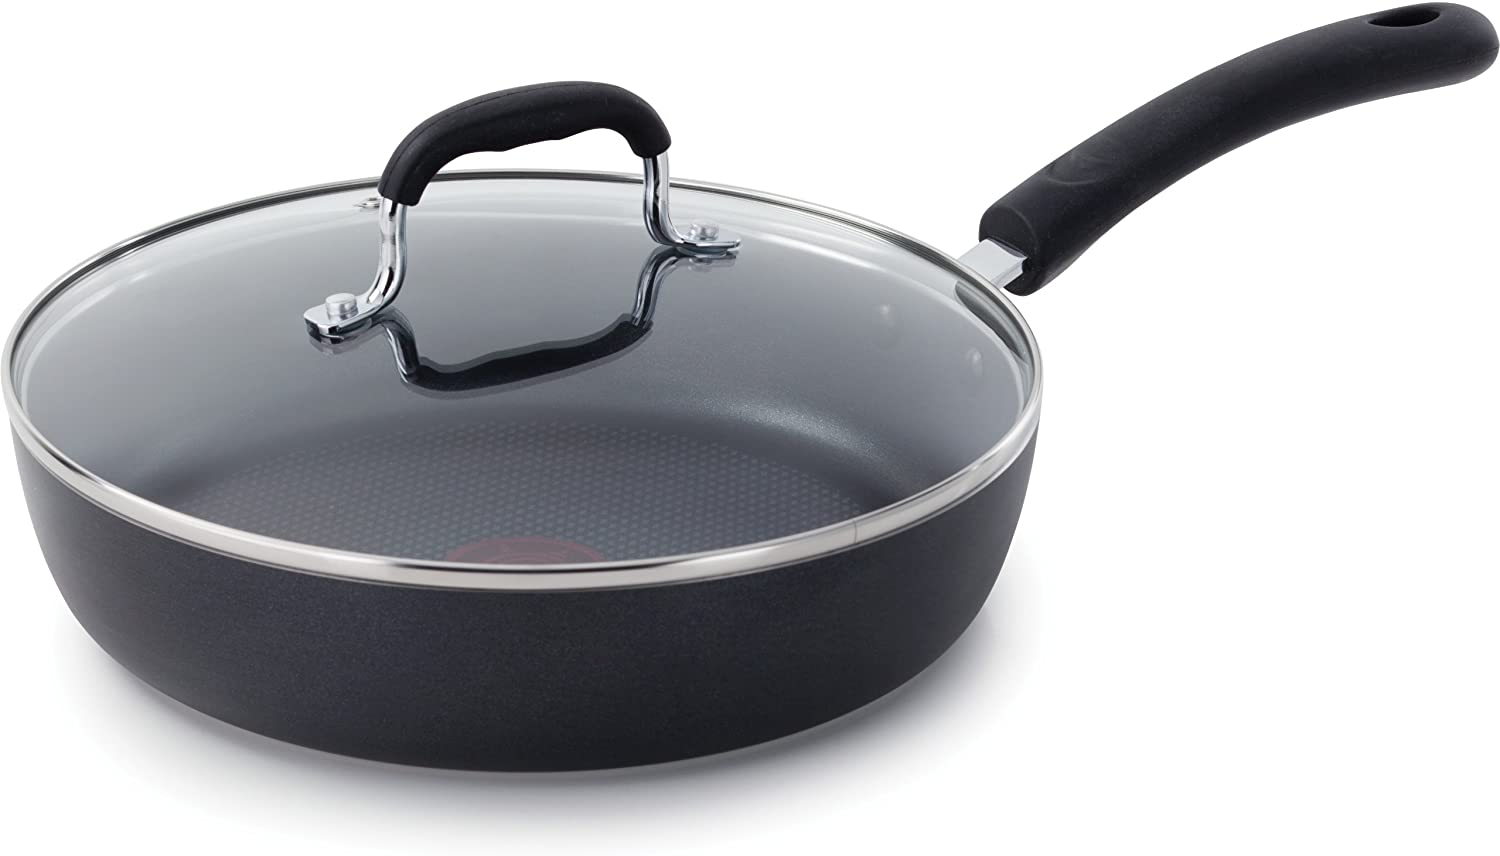 Best dishwasher safe pan for induction- T-Fal Fry Pan